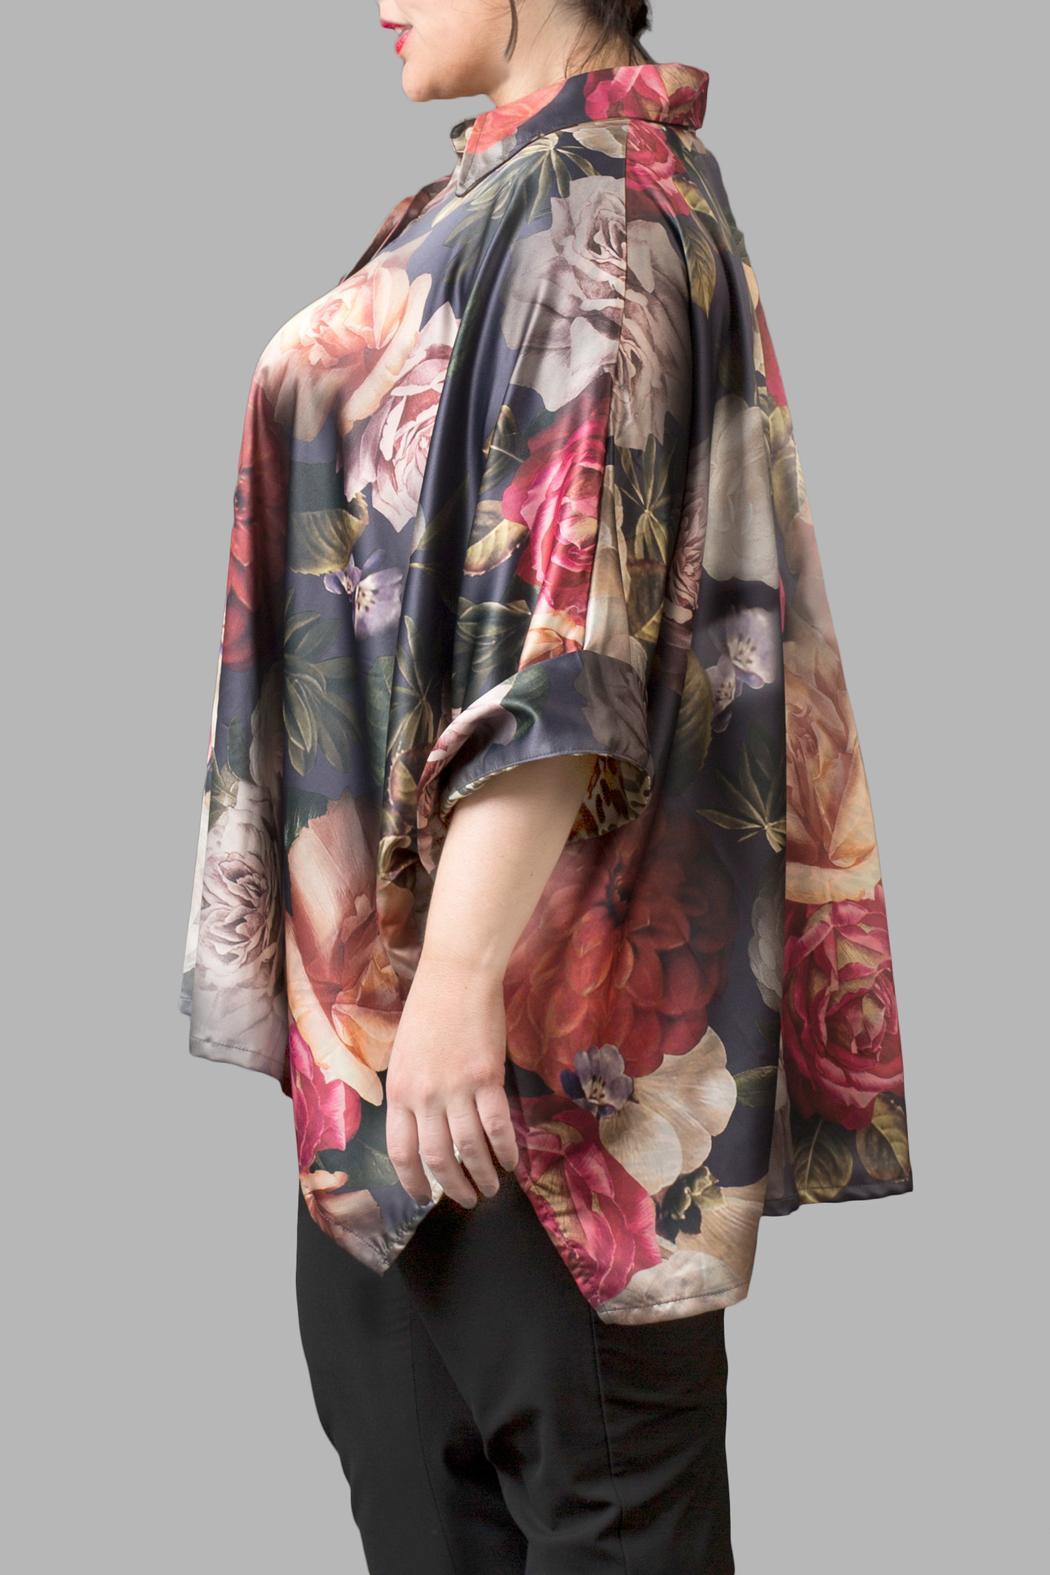 Yona New York Floral Charmeuse Green Top - Front Full Image